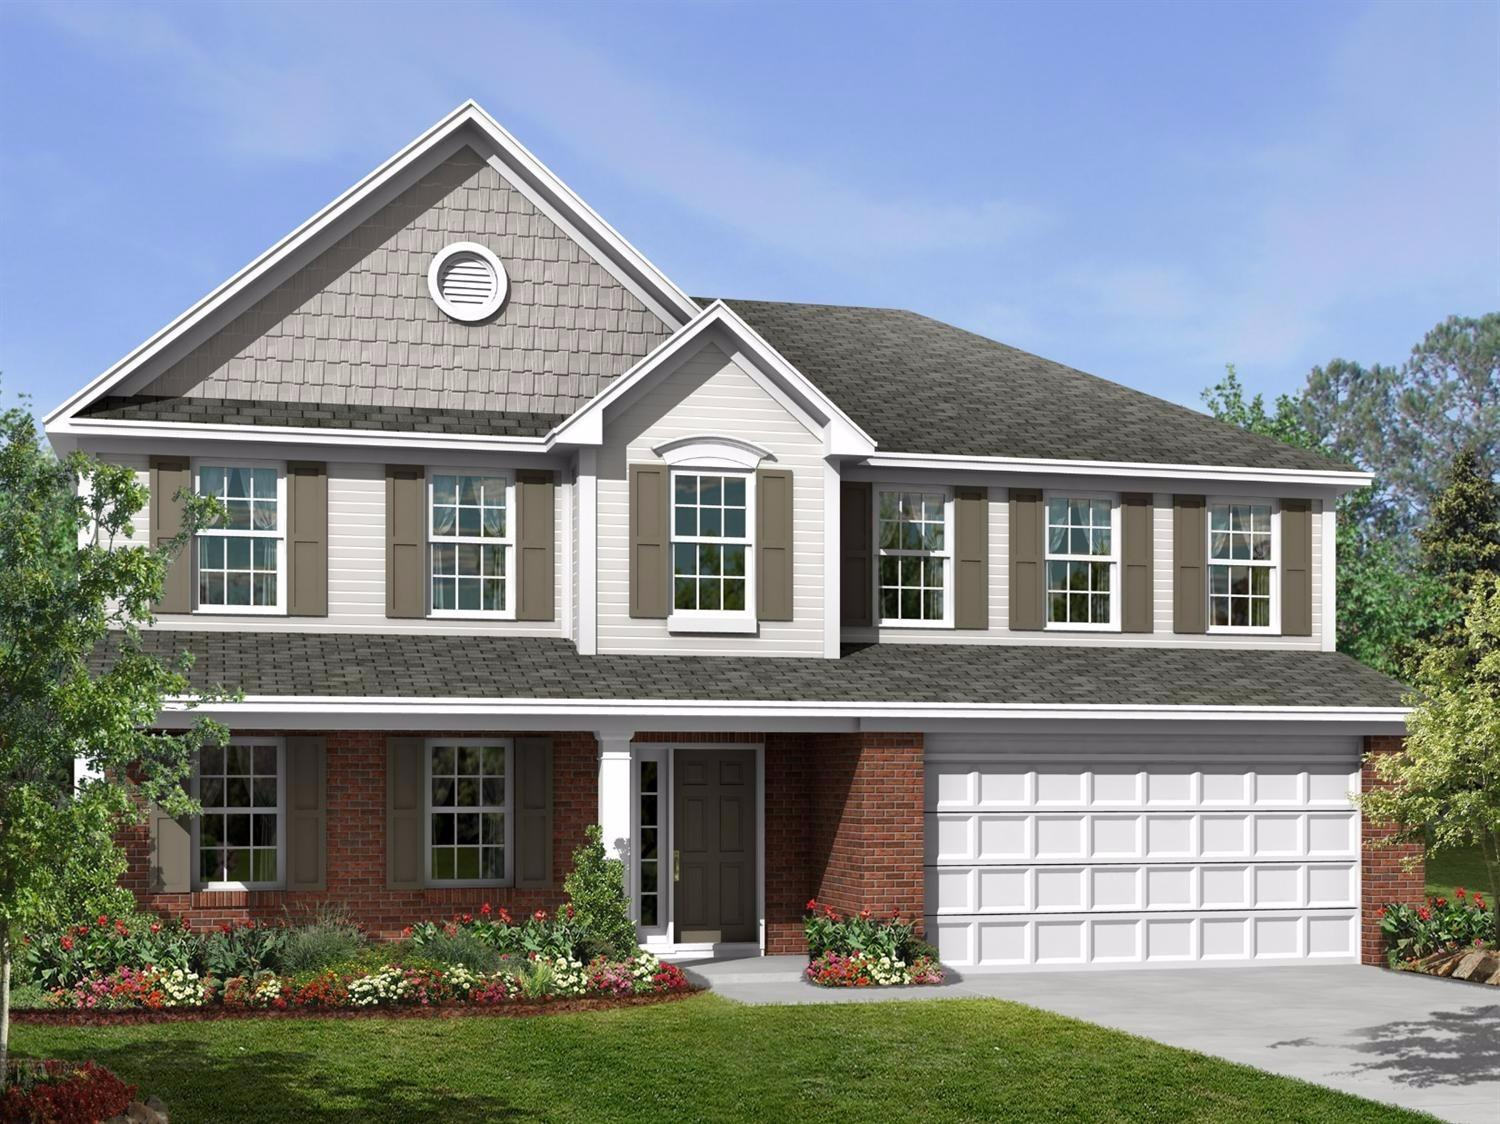 961 burgess ct union twp clermont oh 45245 listing for Burgess builders